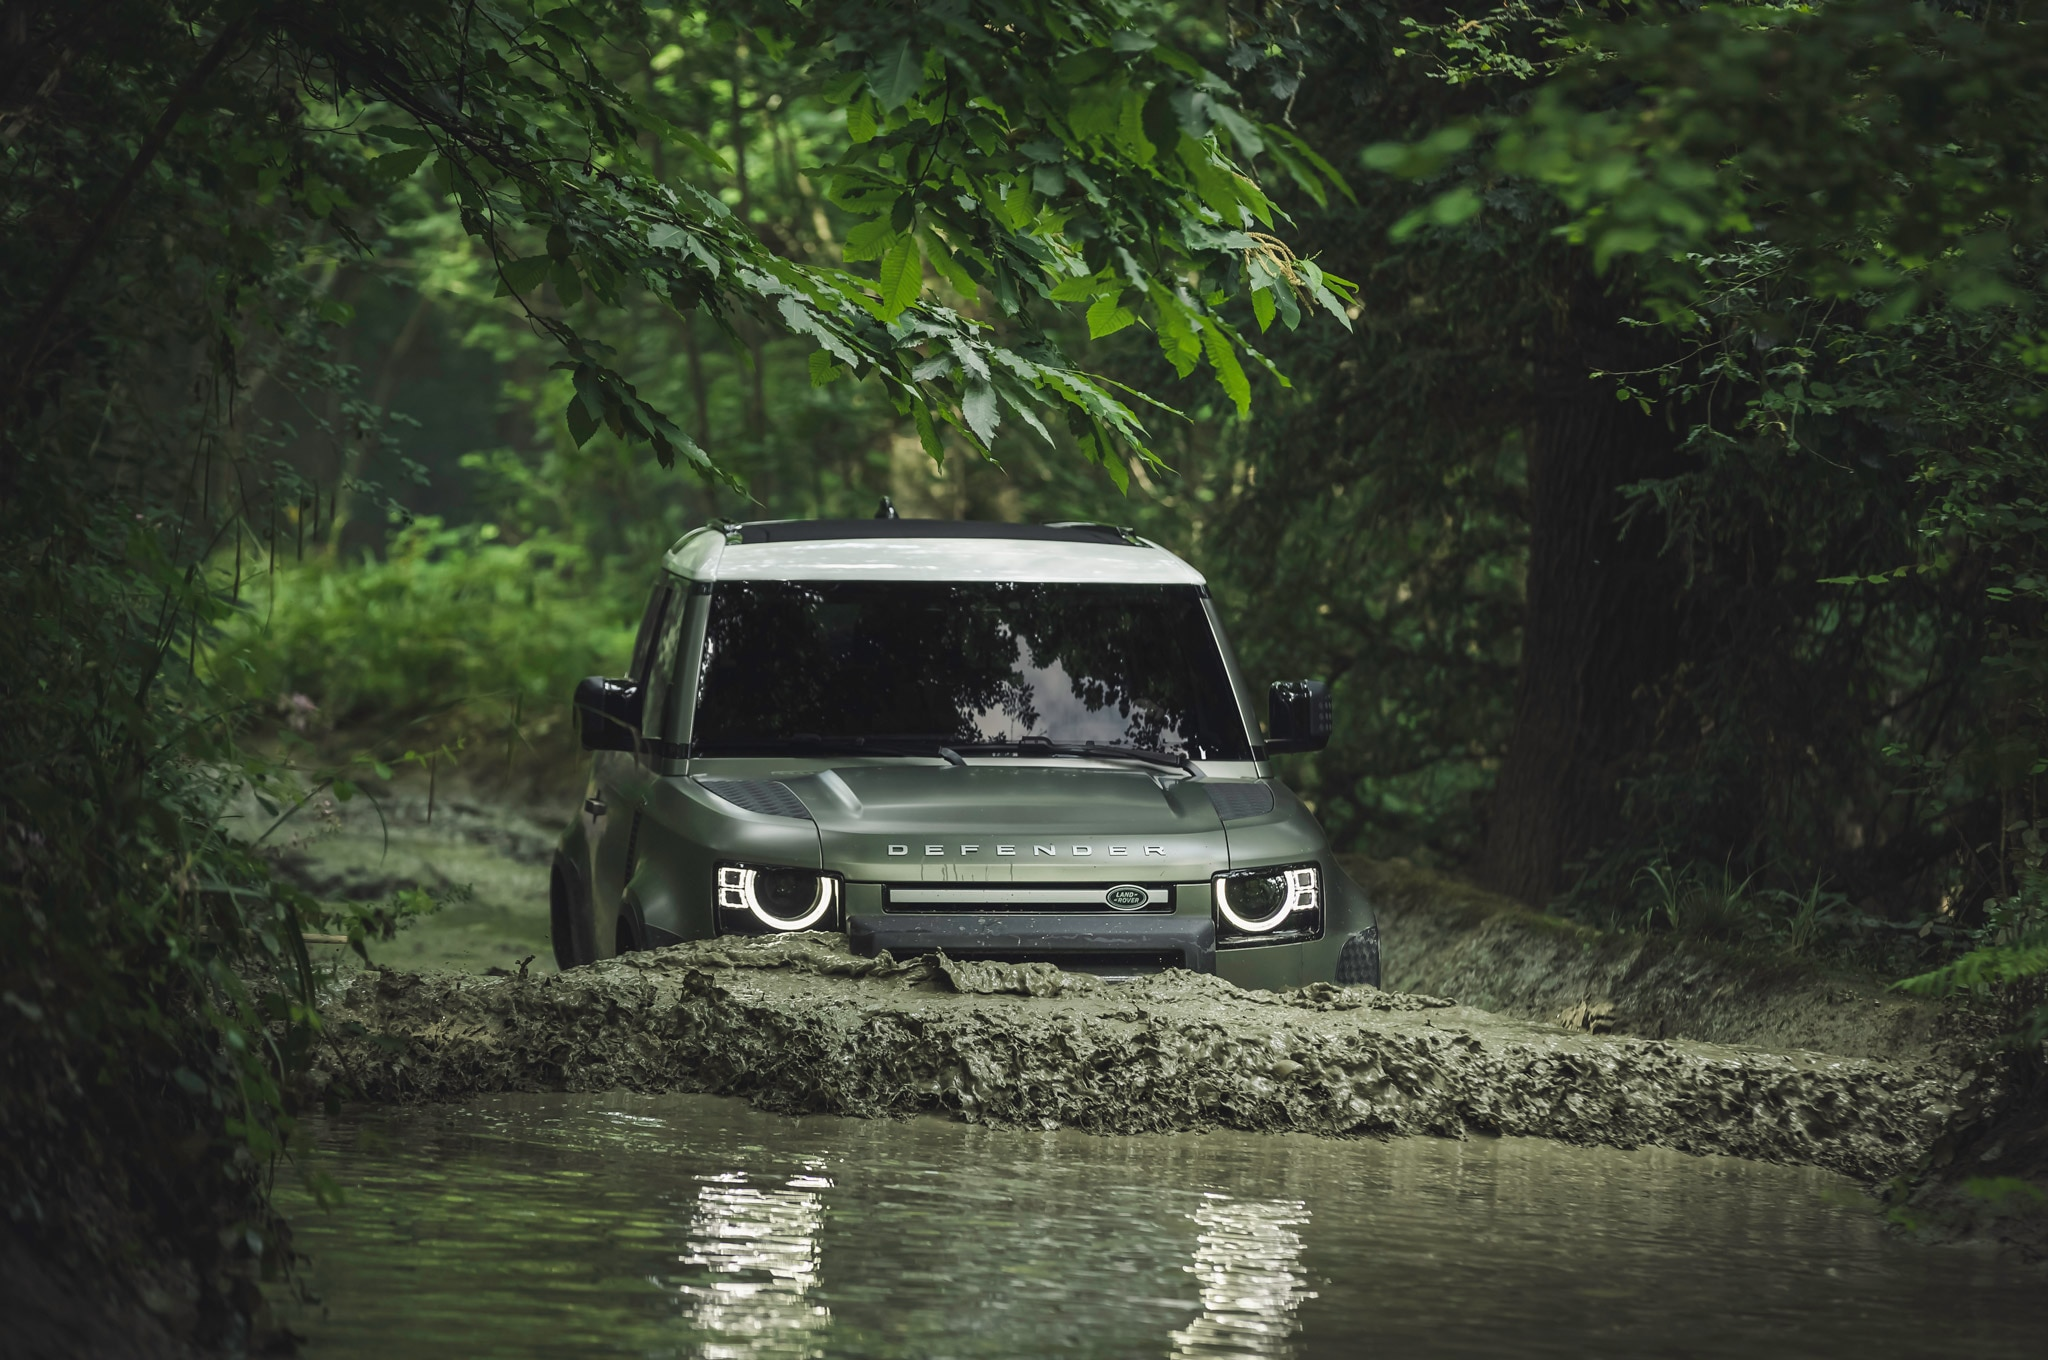 2020 land rover defender 90 off road mud 02